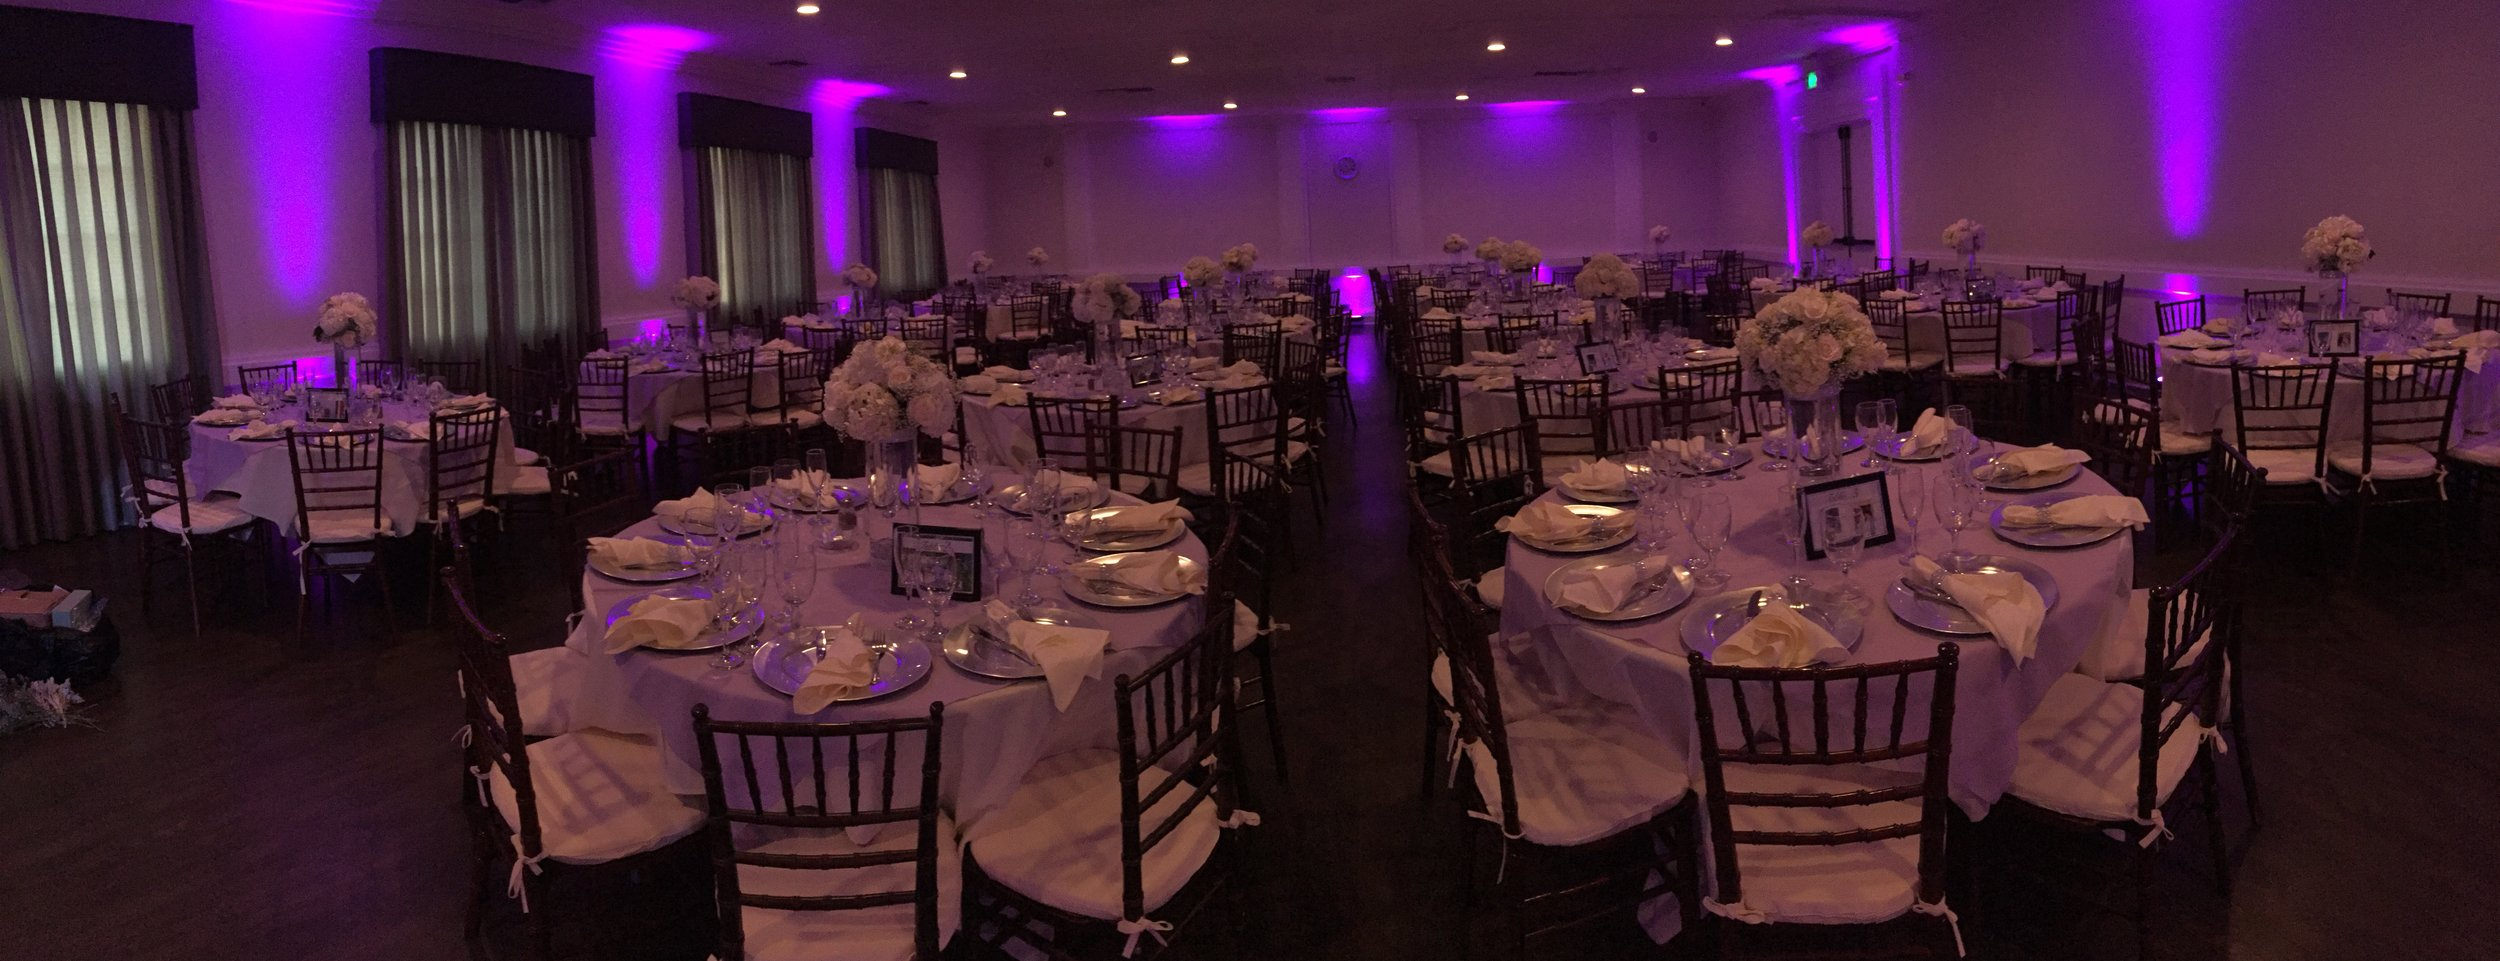 Wireless LED uplighting can turn an ordinary hall into something spectacular  CLICK HERE  for more info